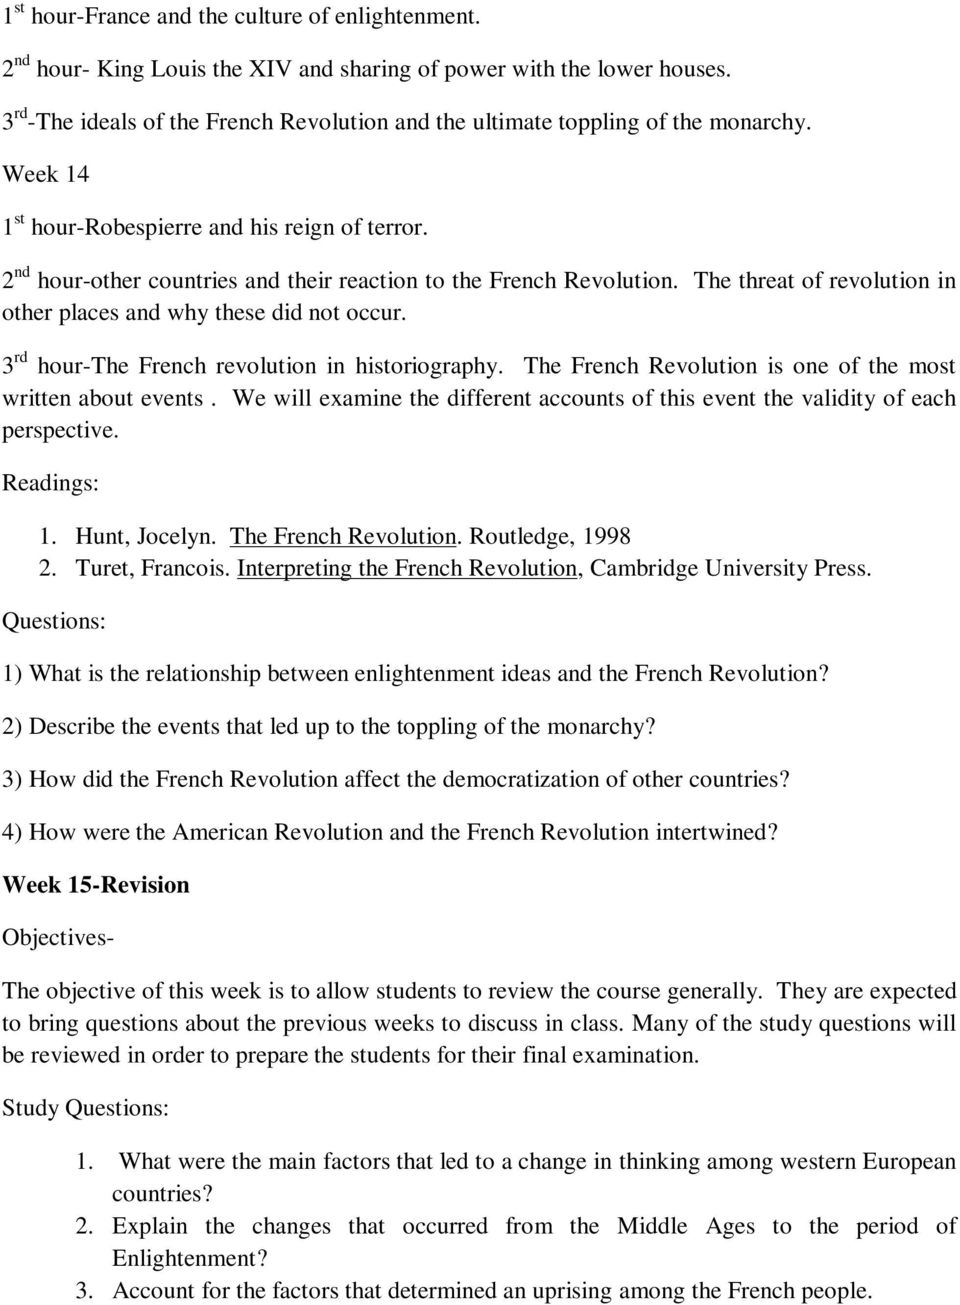 2 nd hour-other countries and their reaction to the French Revolution. The threat of revolution in other places and why these did not occur. 3 rd hour-the French revolution in historiography.